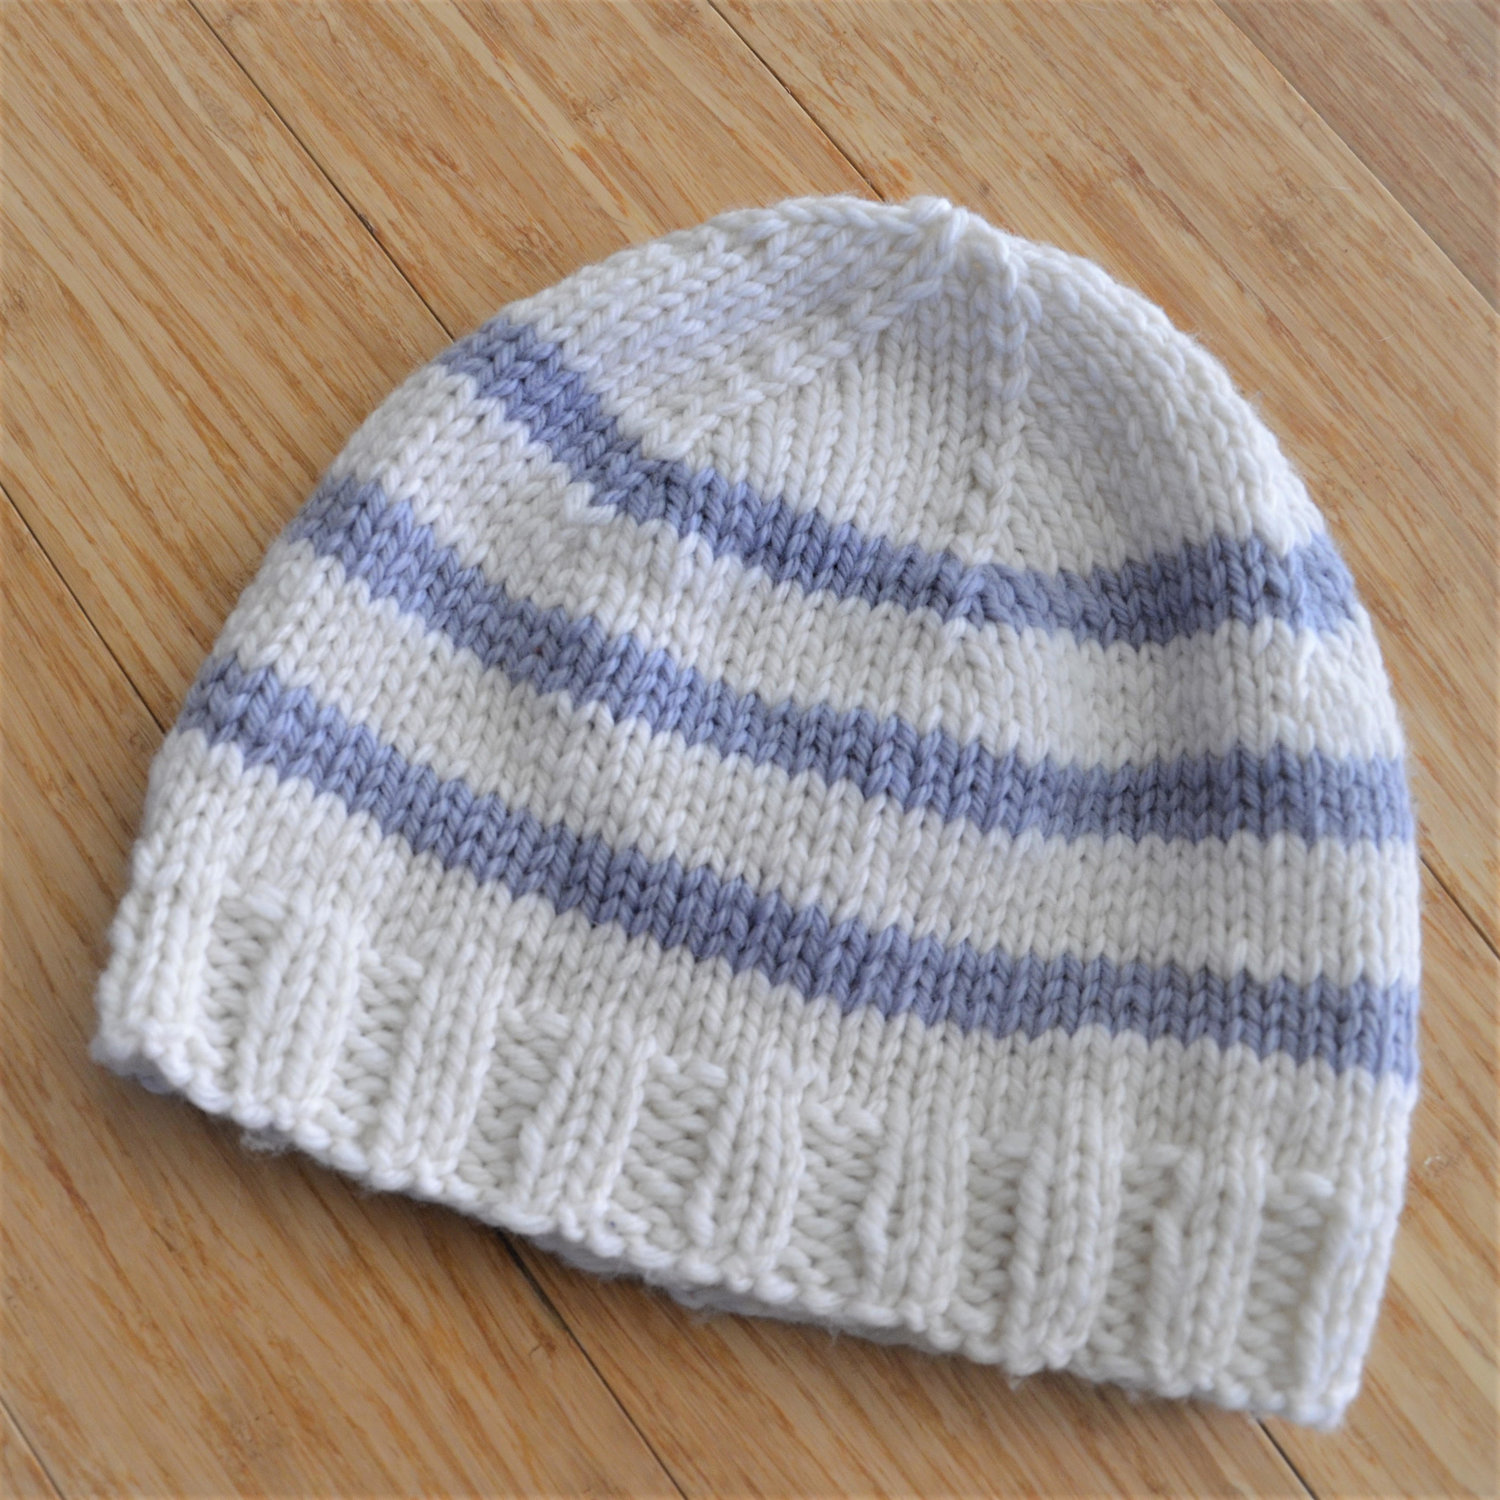 d3b0f9153e4 Knitting 102  Knit a Striped Hat (1 of 3) — Spry Whimsy Fiber Arts